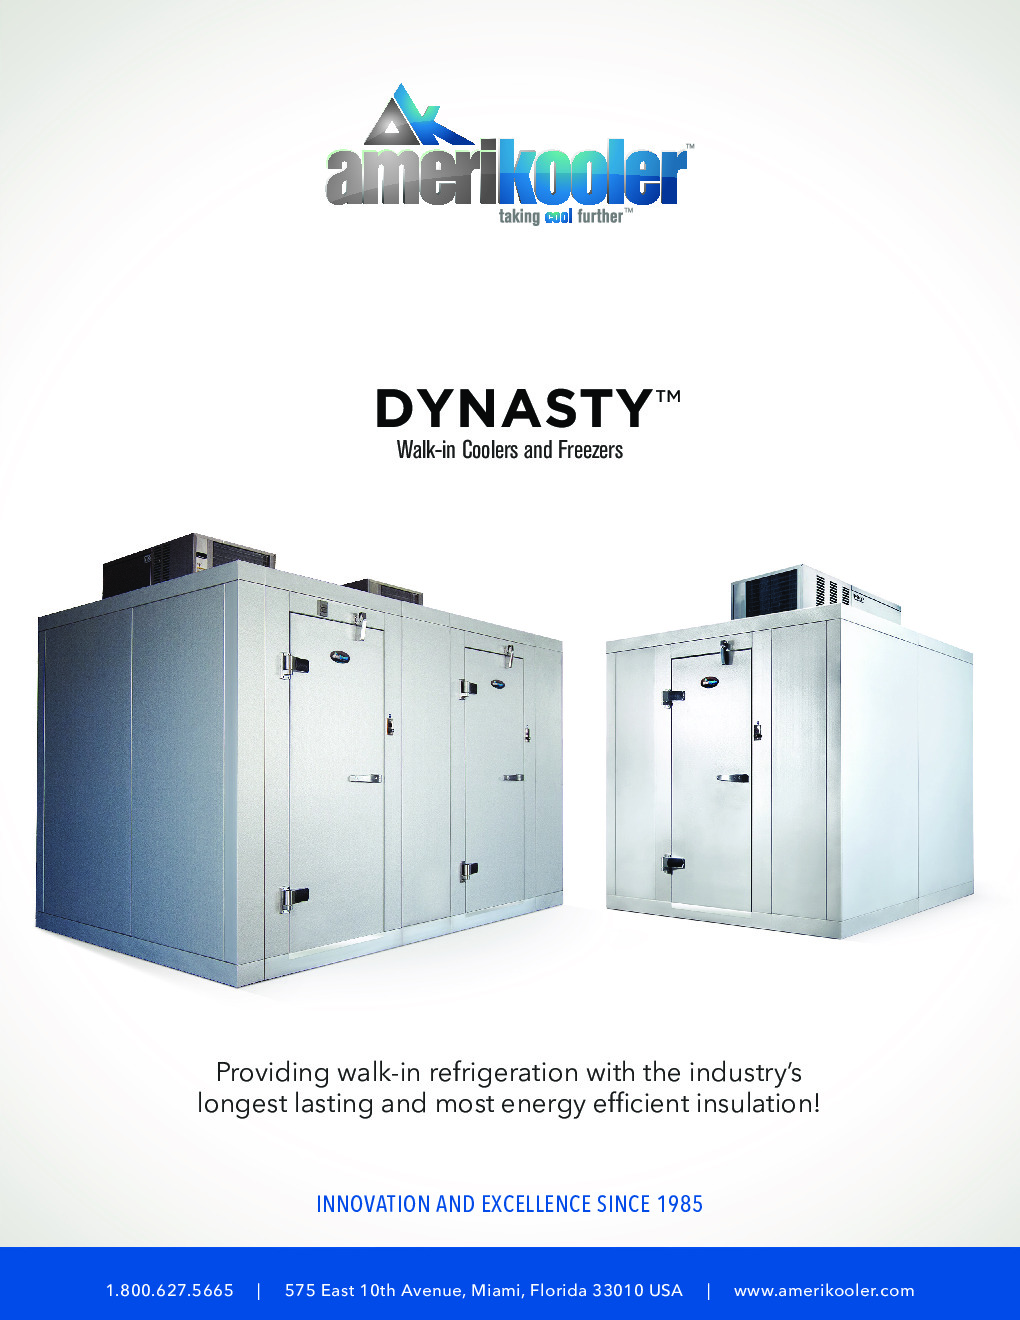 AmeriKooler DW081477N-7/7-RM 8' X 14' Walk-In Cooler, 7' L Cooler without Floor and 7' L Freezer, Remote